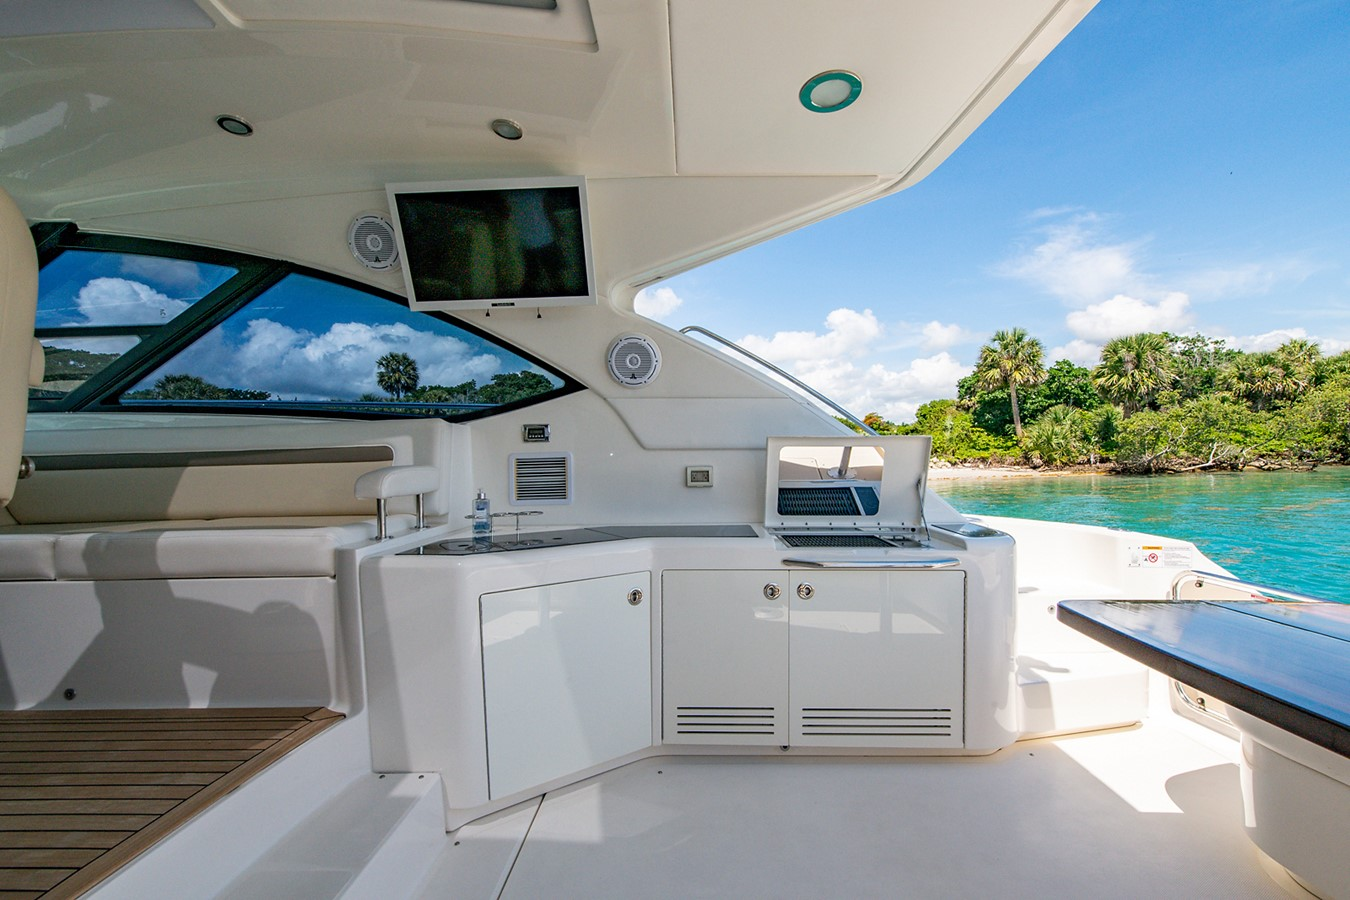 2013 SEA RAY Sundancer Motor Yacht 2531142